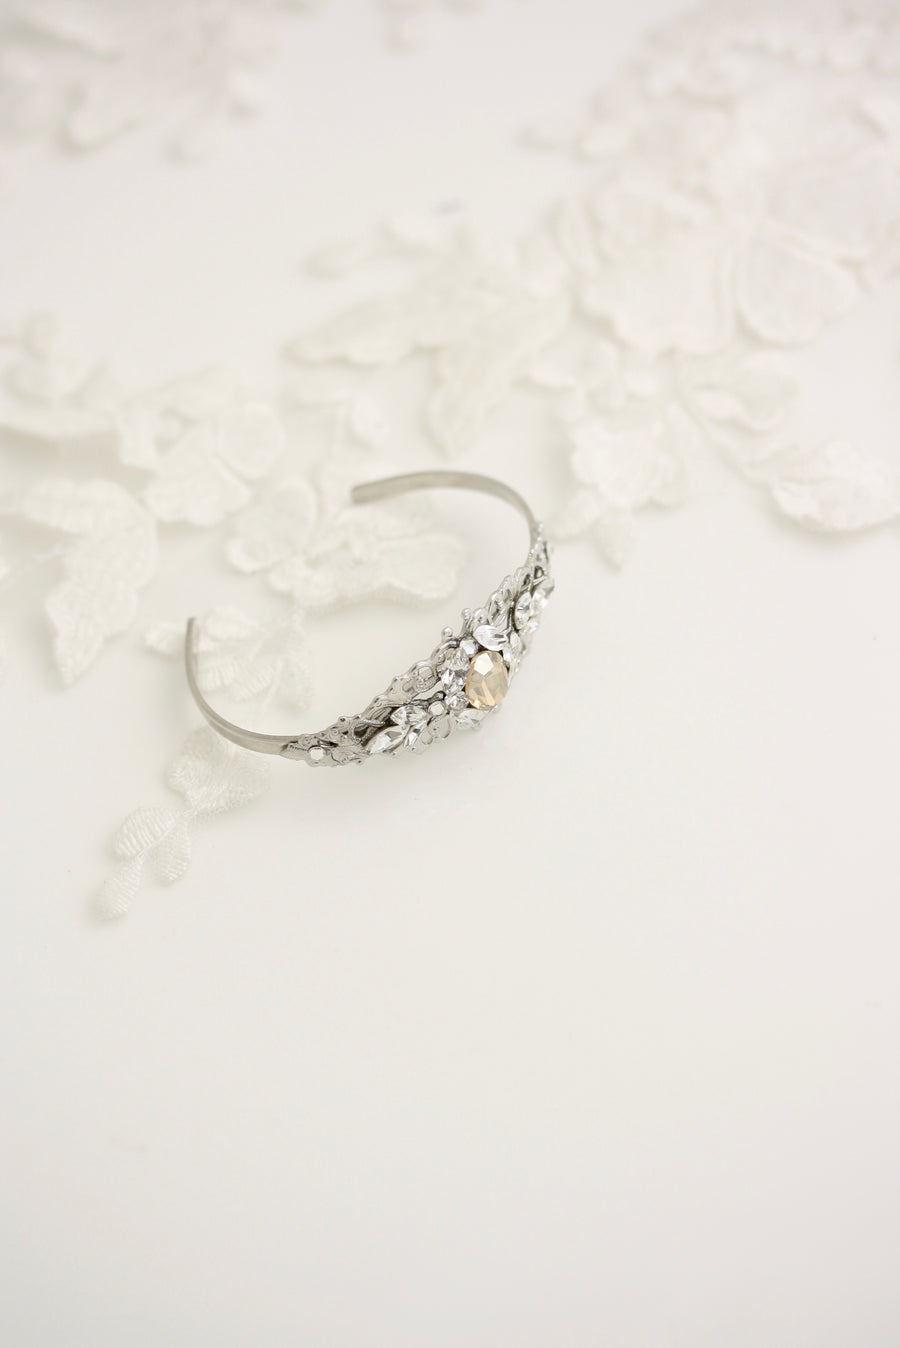 BRIELLE BRIDAL BRACELET - Lulu Splendor